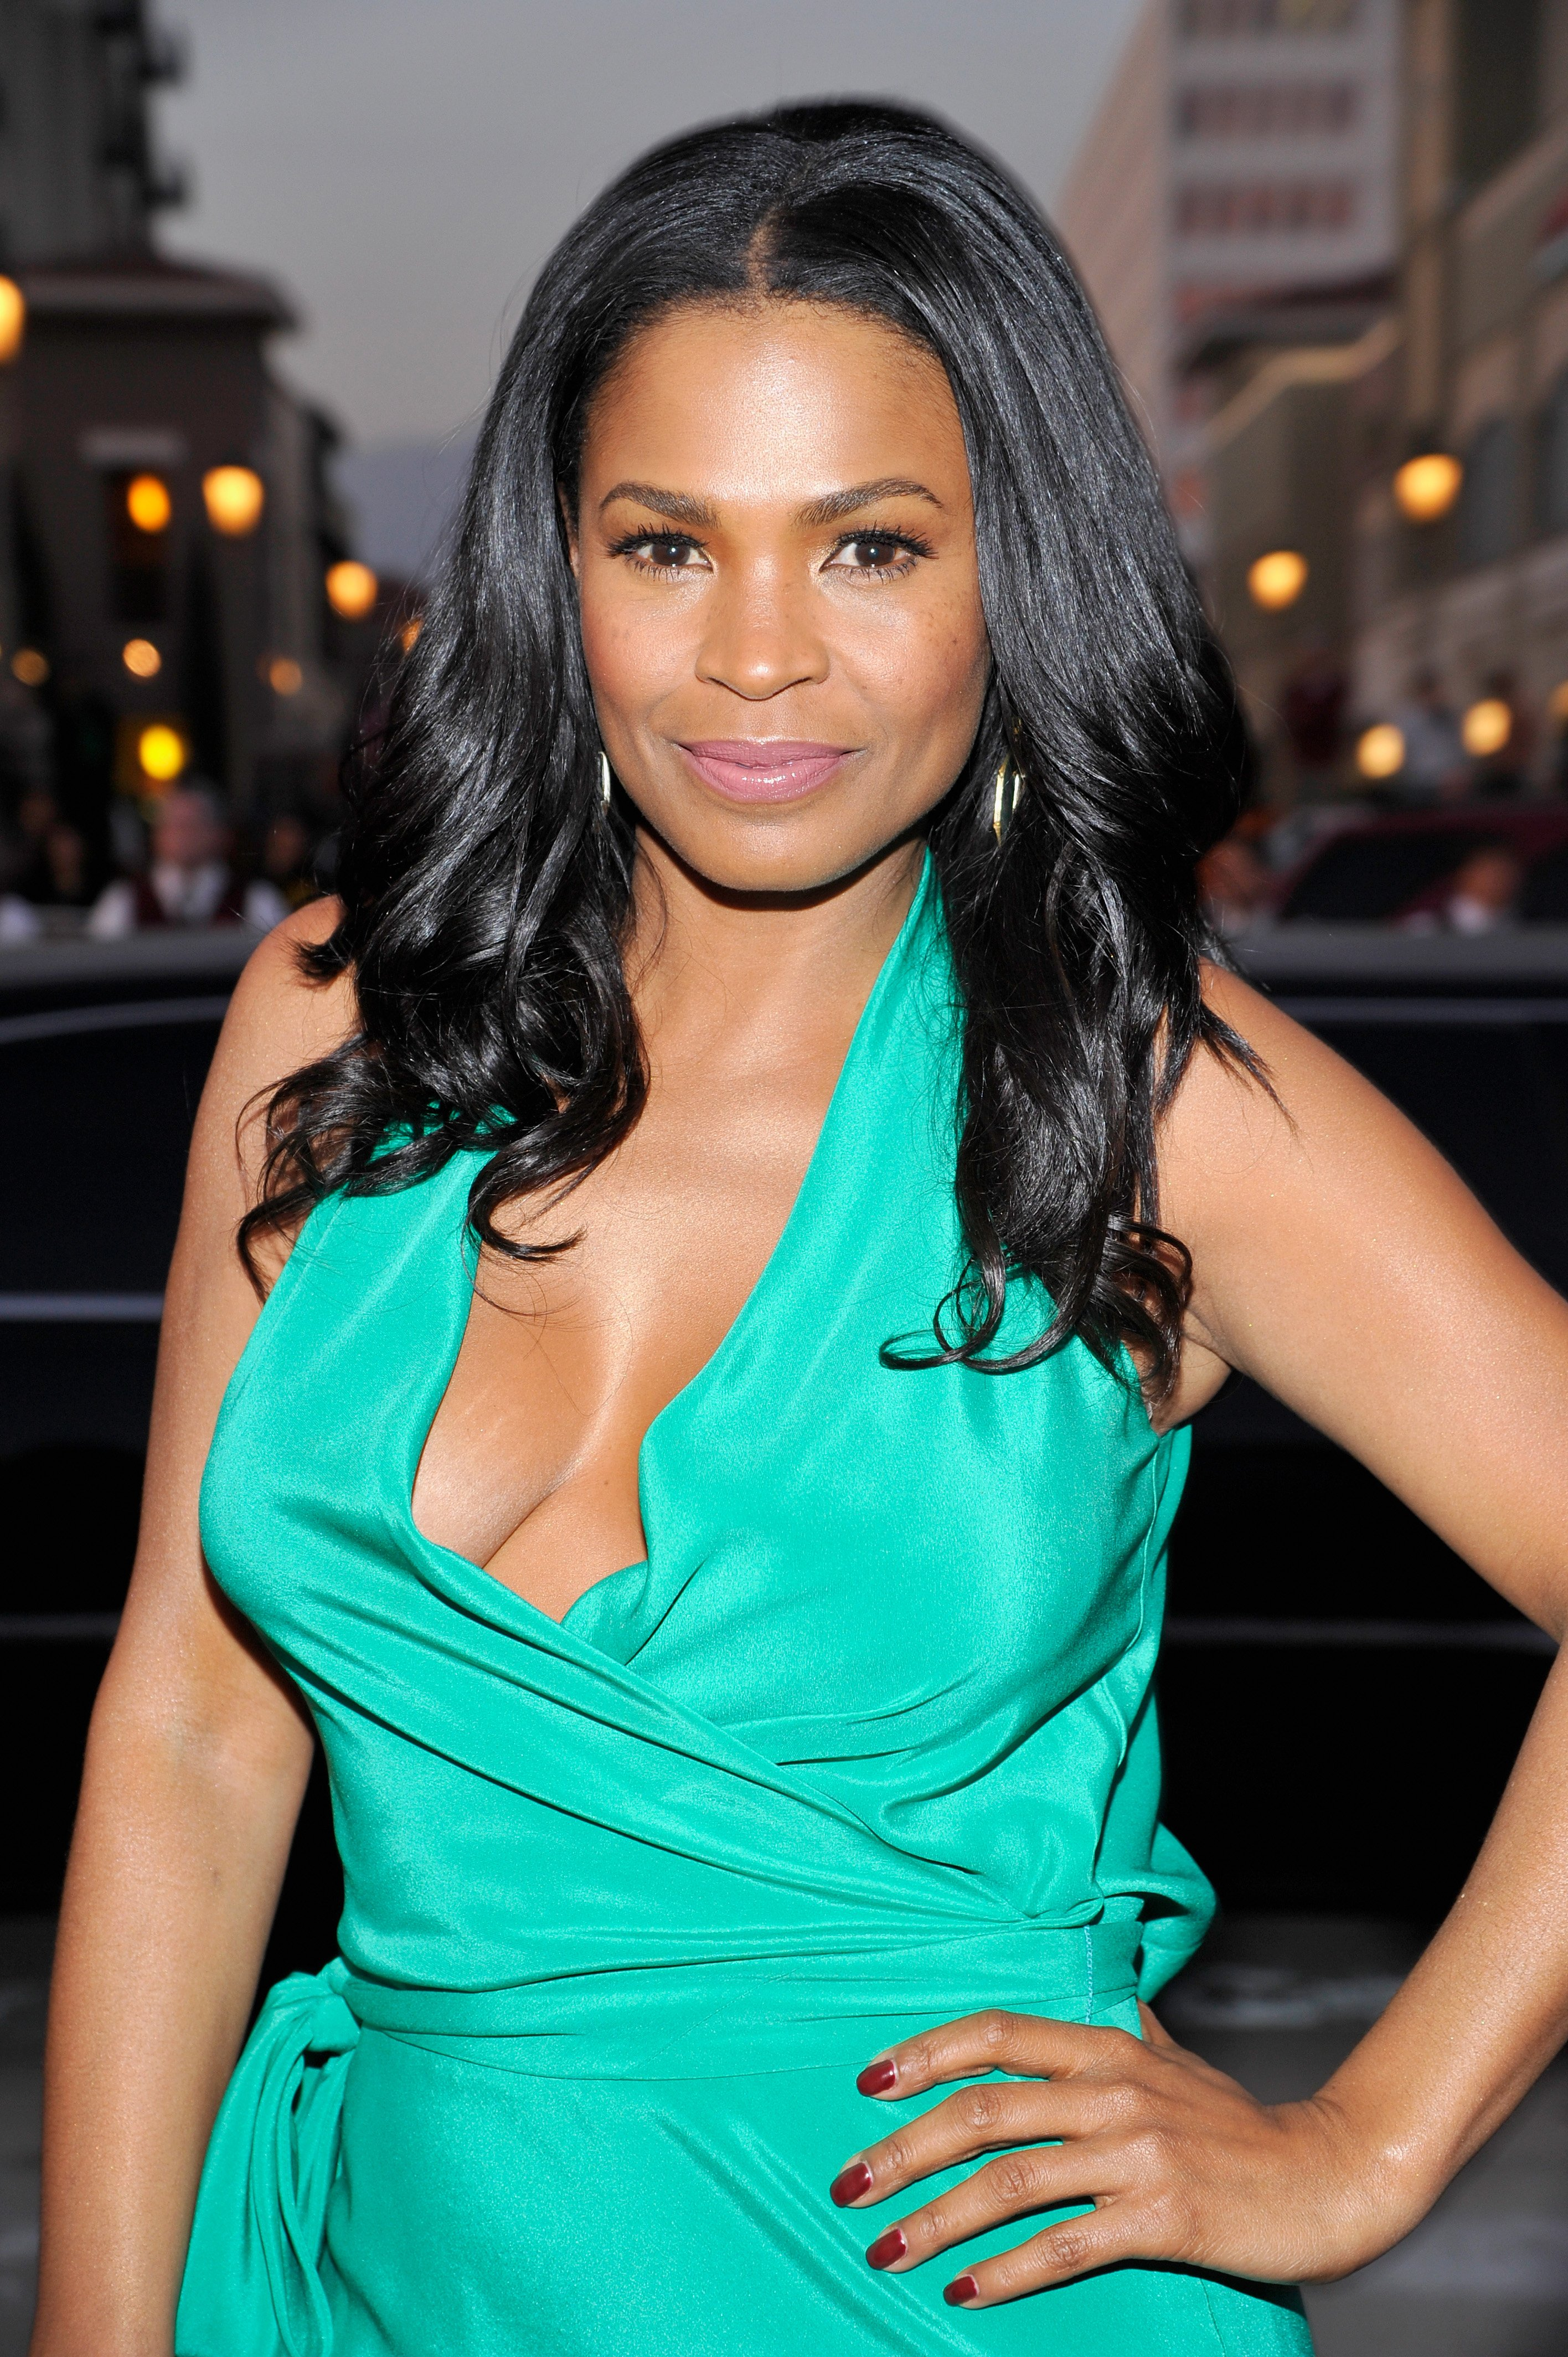 Nia Long pictured at the 45th NAACP Image Awards at Pasadena Civic Auditorium on February 22, 2014 in Pasadena, California.   Source: Getty Images